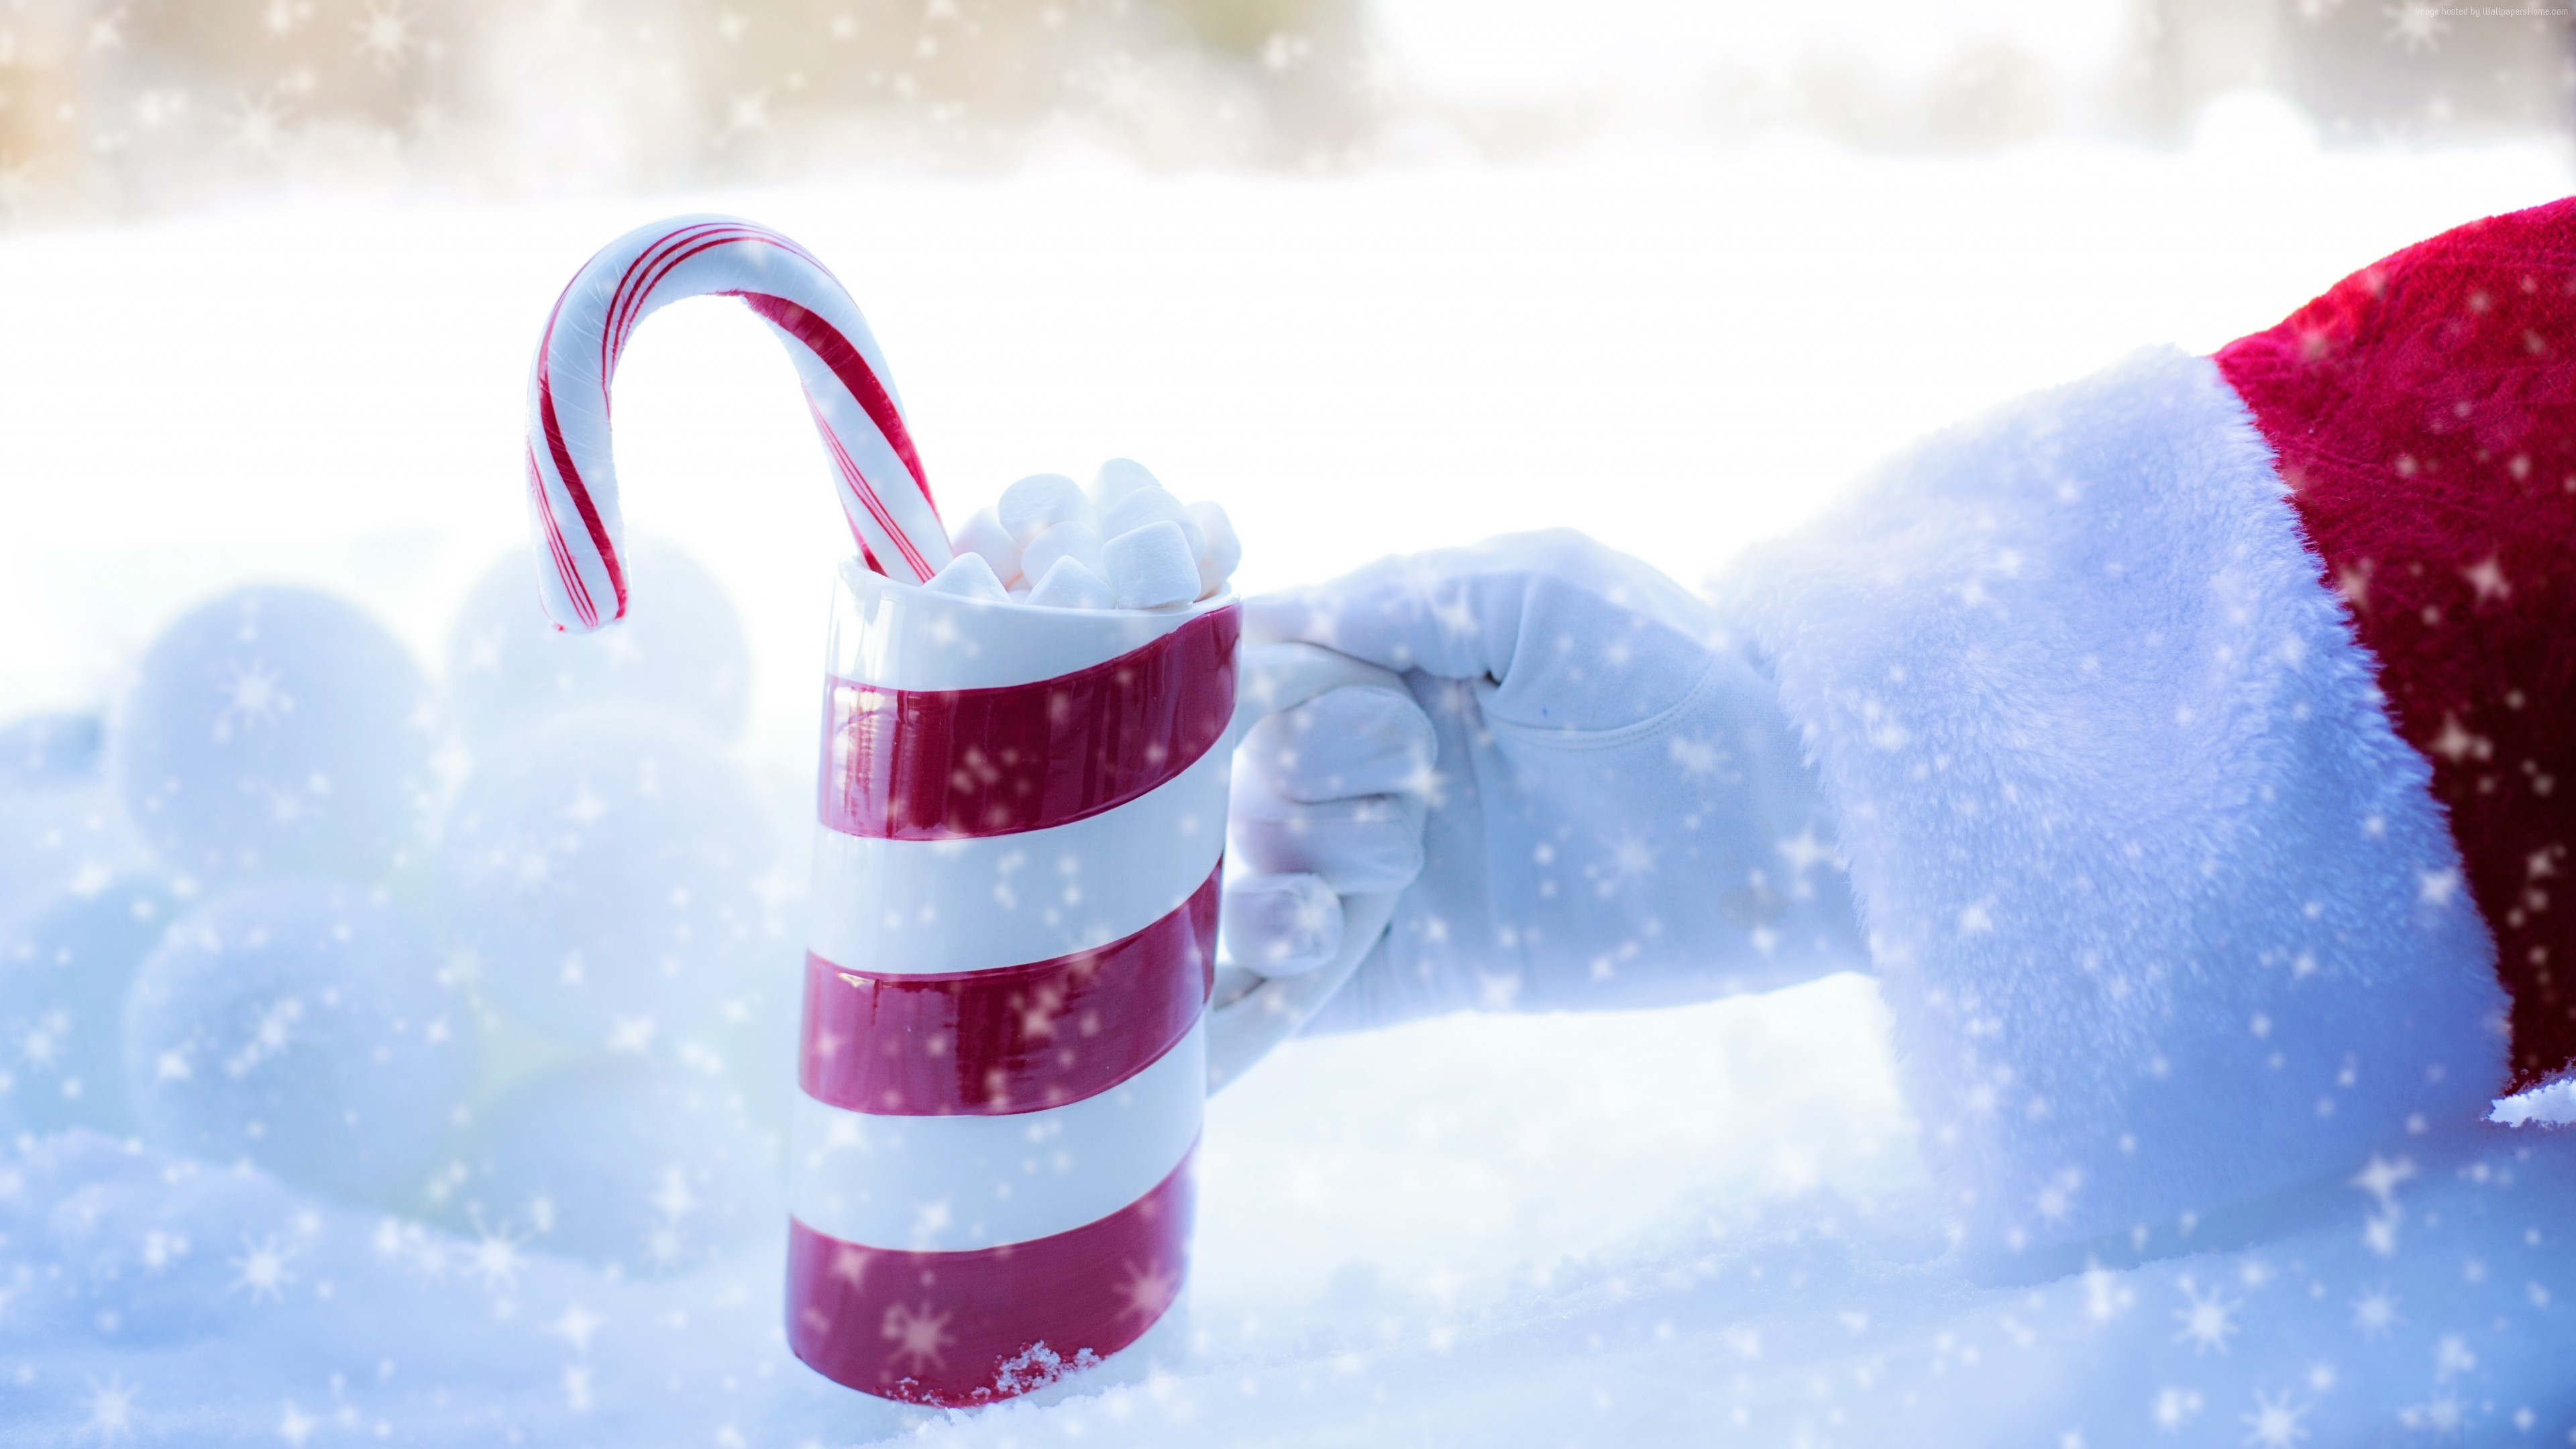 Stock Images Christmas, New Year, Santa, snow, winter, candy, cup, 5k, Stock Images